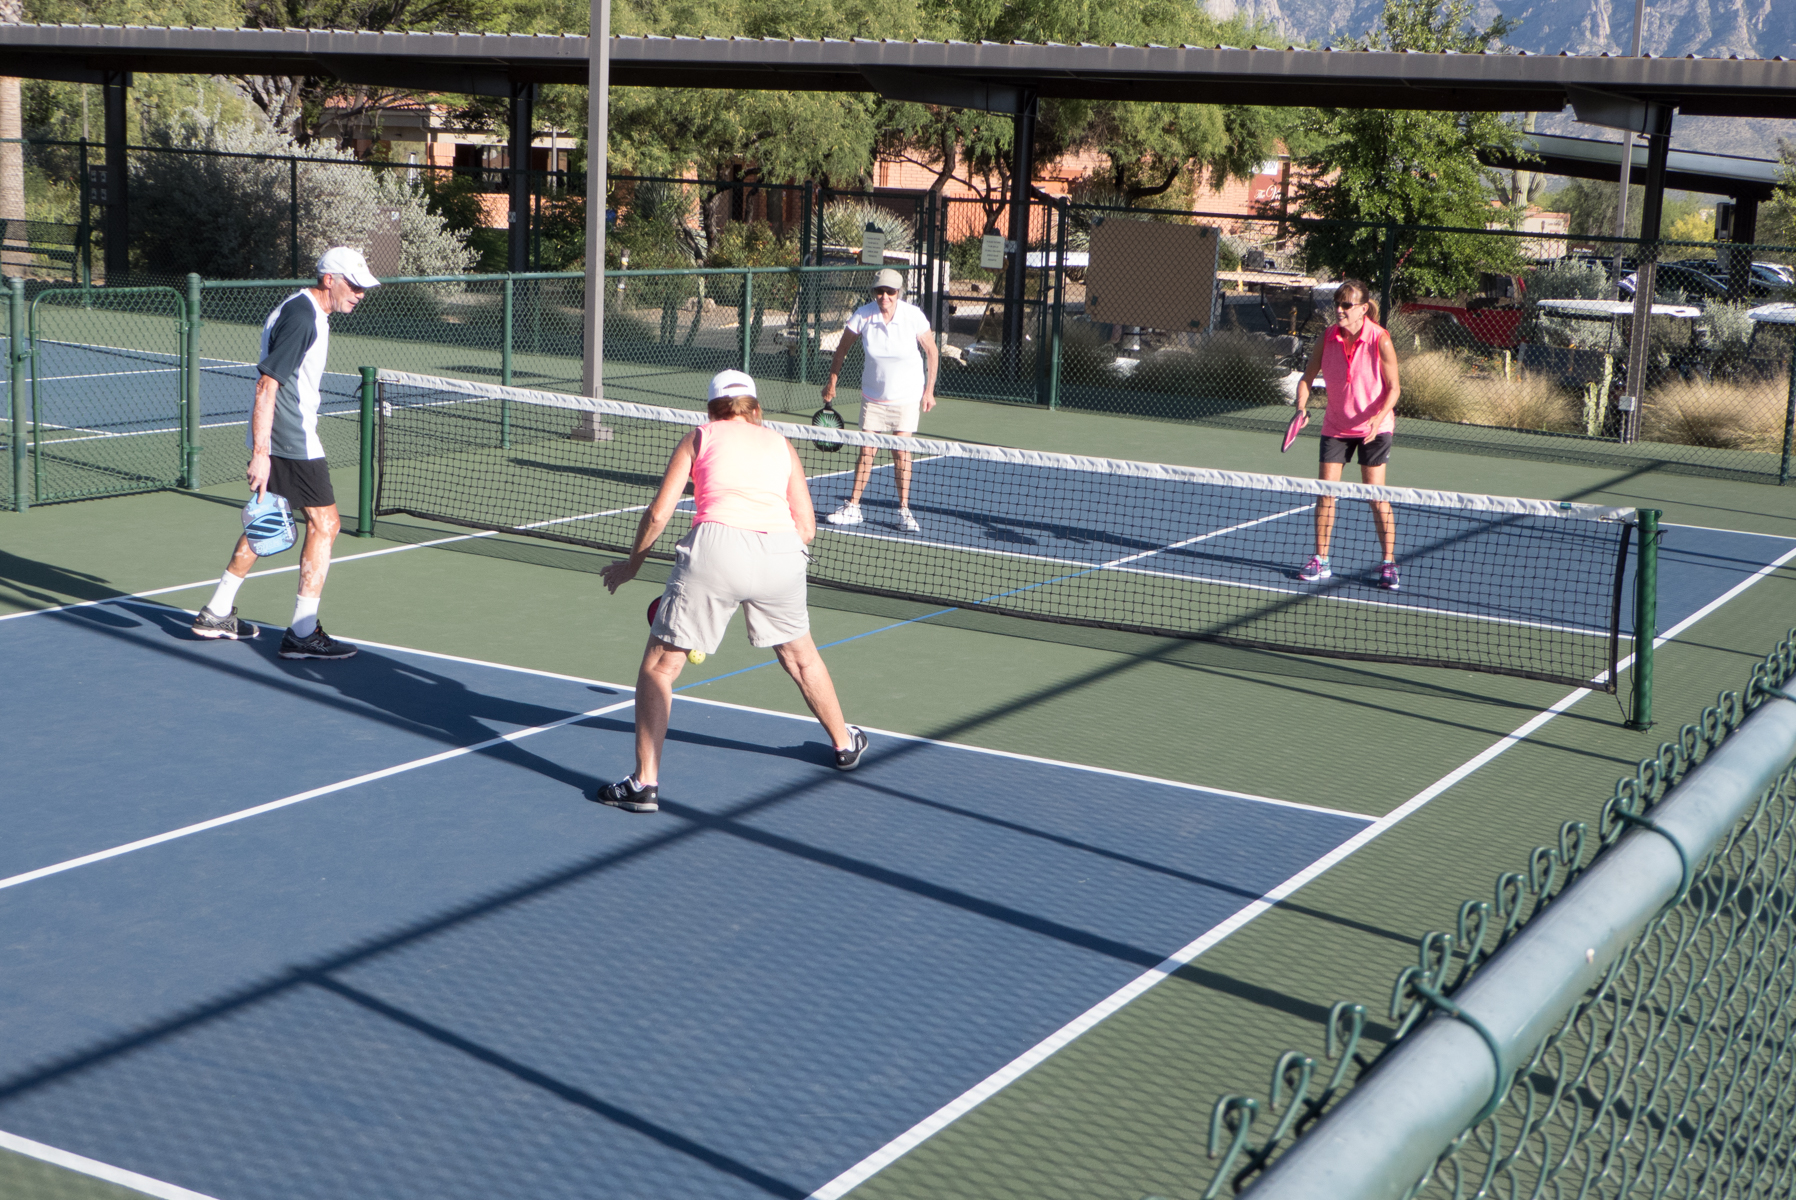 Great exercise and making friends on the Pickleball court